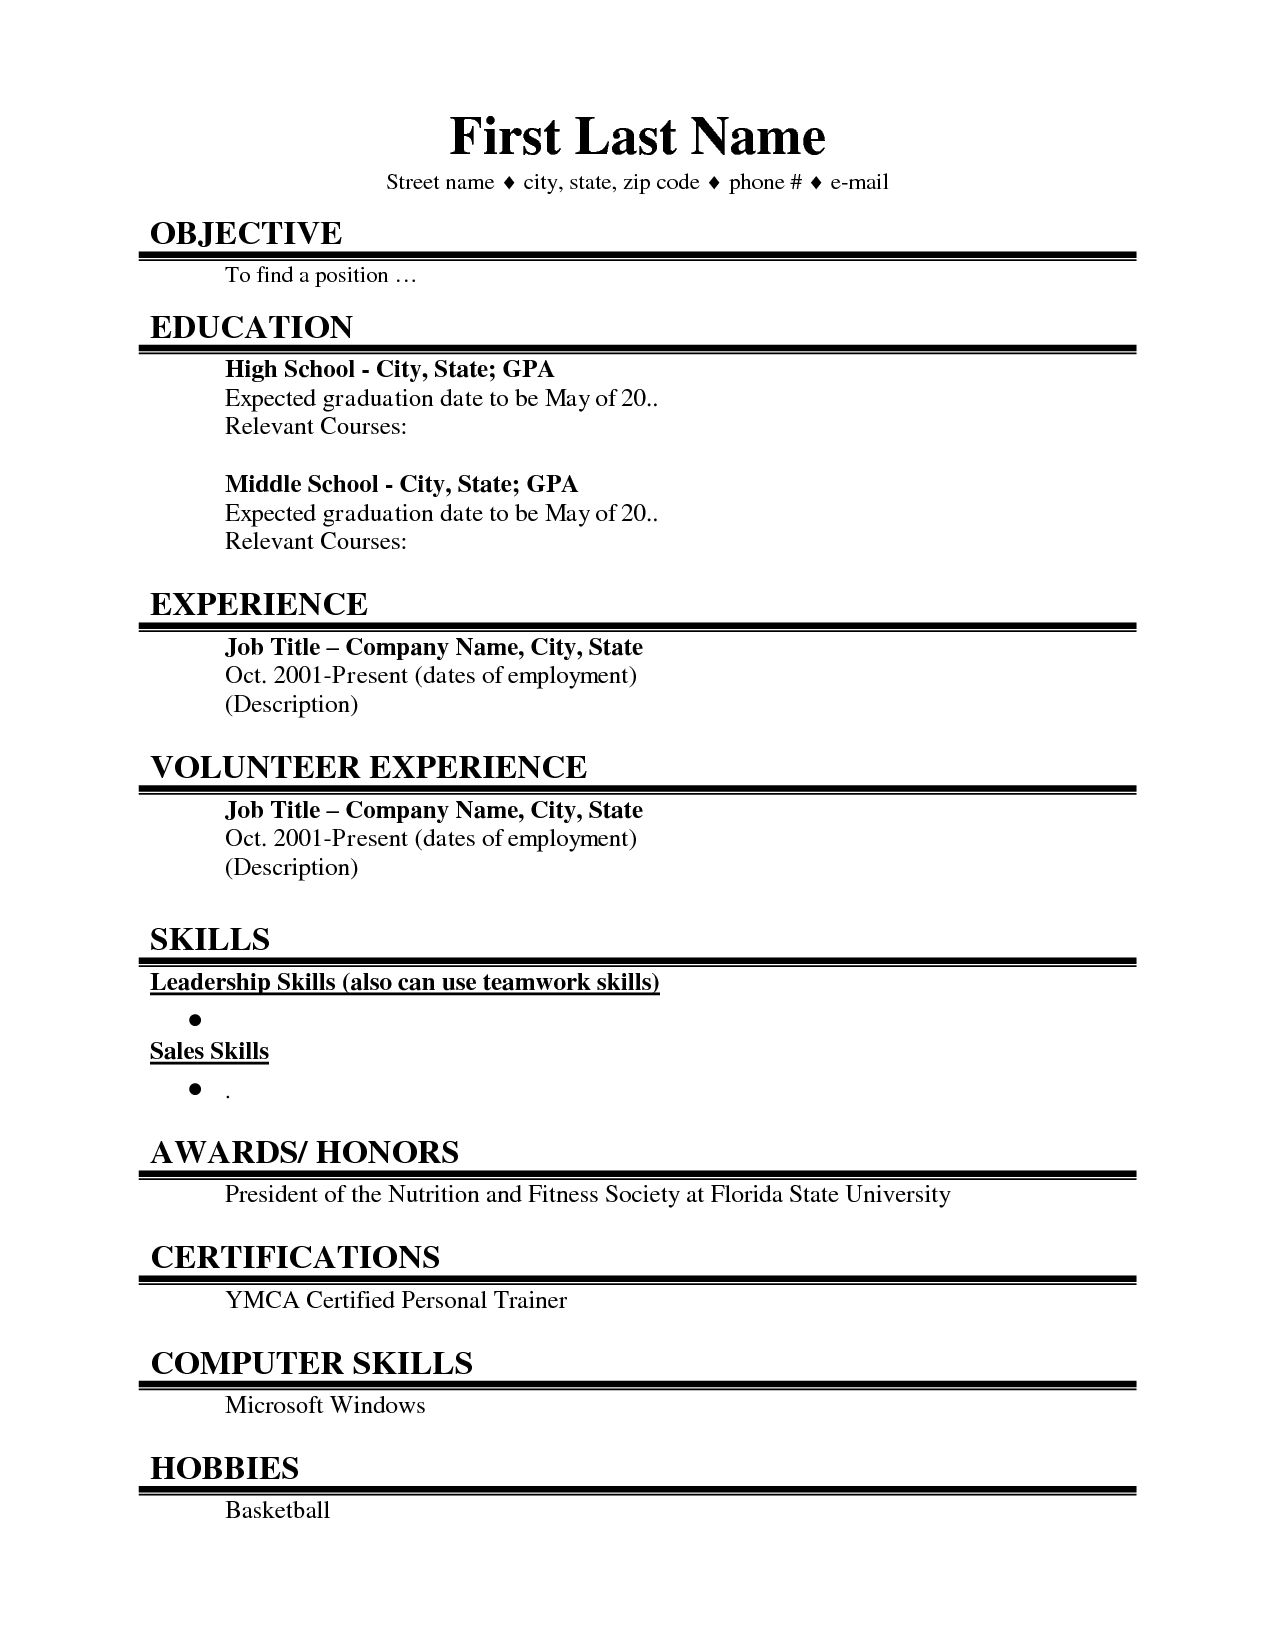 resume layout for first job - Resume Templates For Teenagers